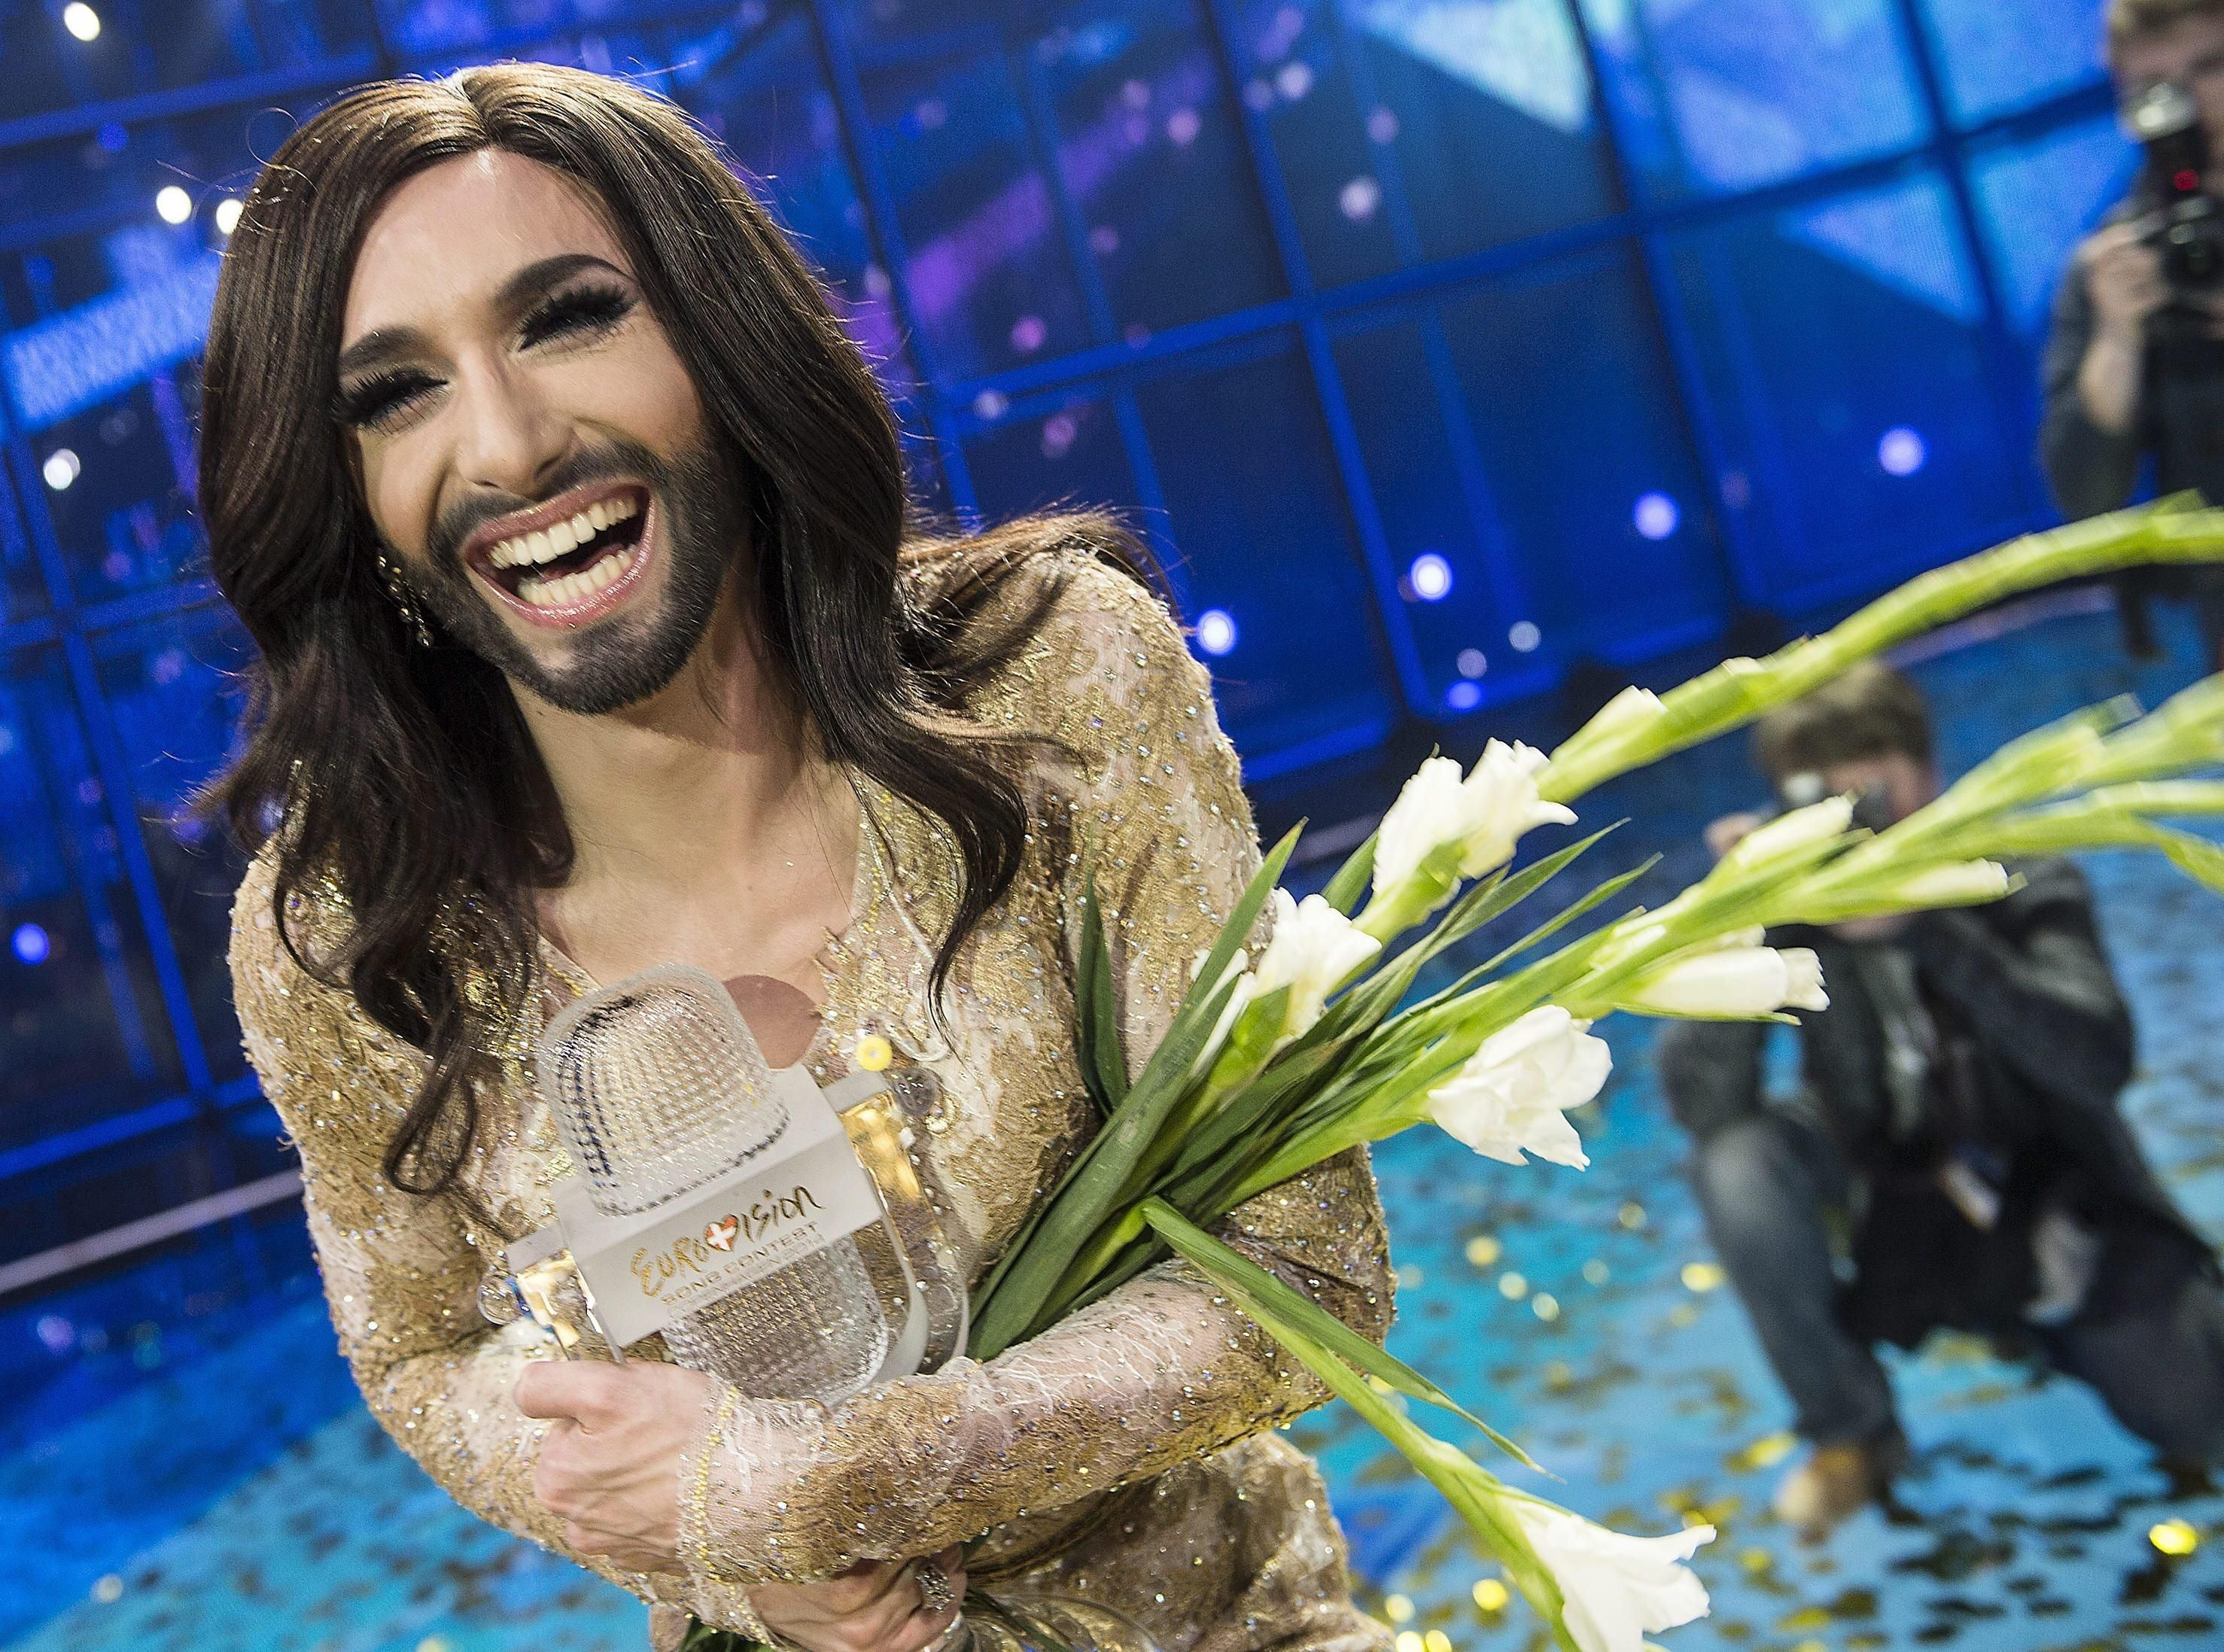 Conchita wurst and dana international in eurovision first star - Austria S Bearded Lady Conchita Wurst Wins The 2014 Eurovision Song Contest News Com Au Conchita Pinterest Bearded Lady